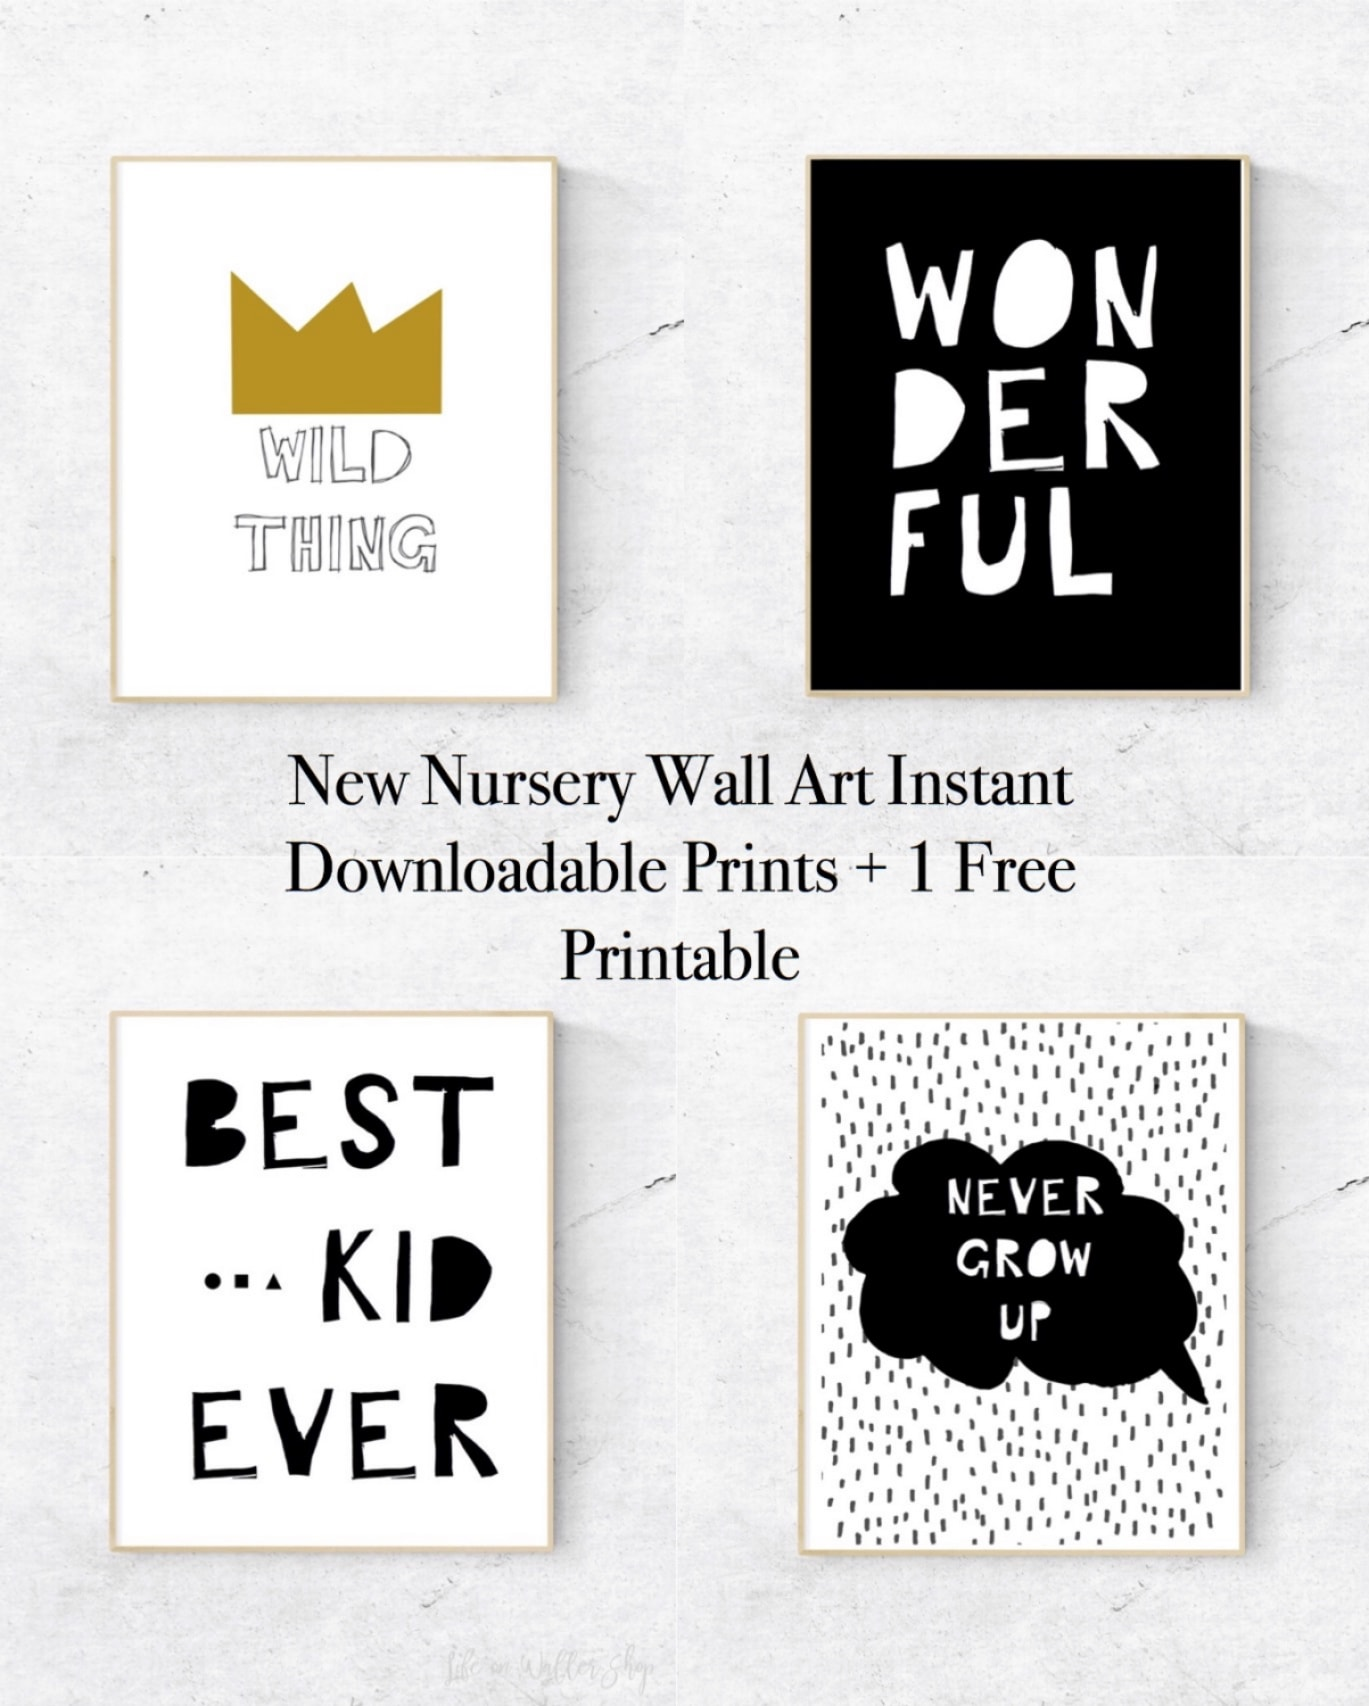 New Nursery Wall Art Instant Downloadable Prints + 1 Free Printable